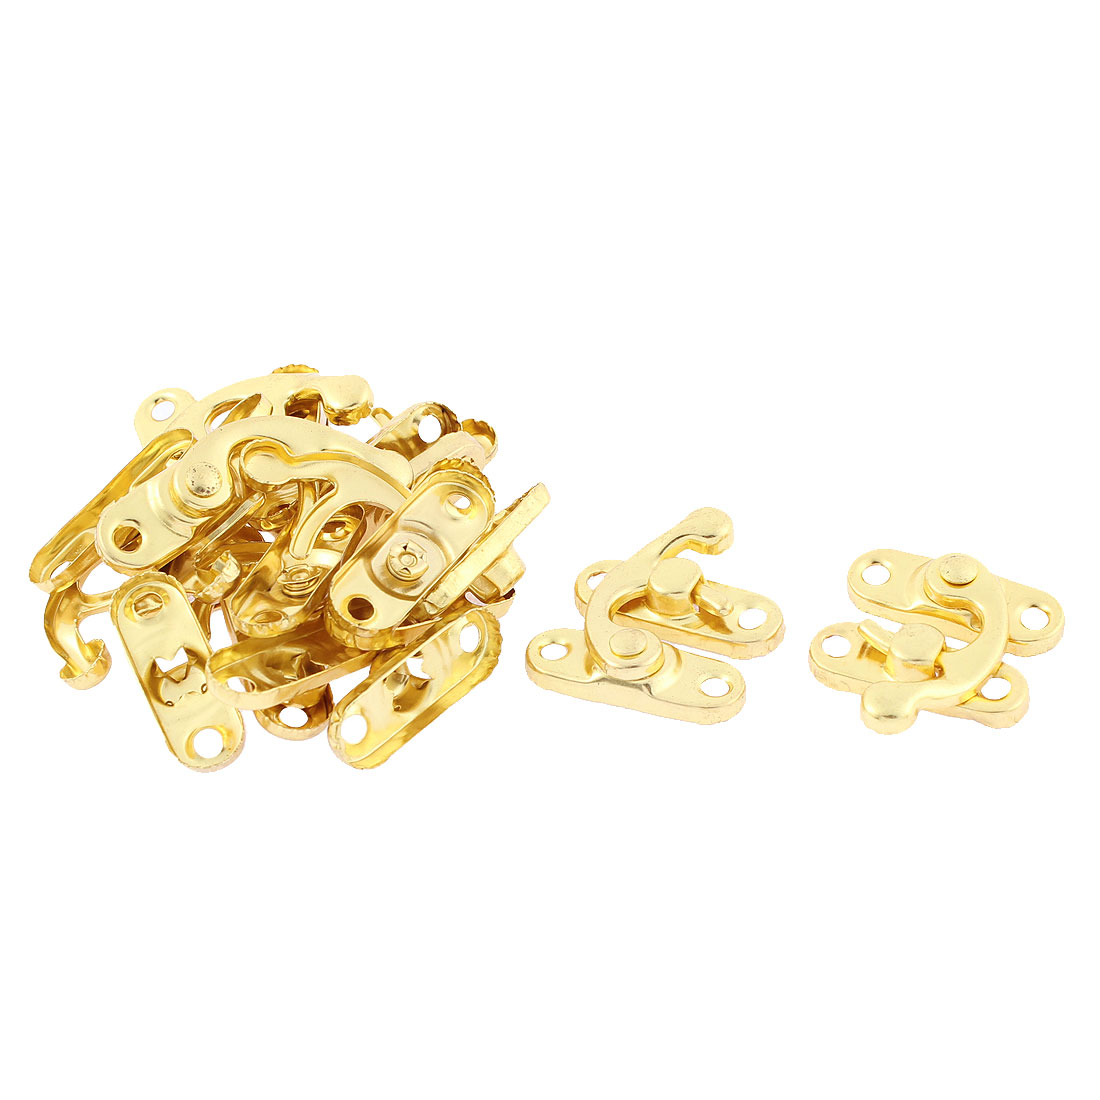 Hook Hinge Lock Clasp Closure Box Latch Gold Tone 10 Sets